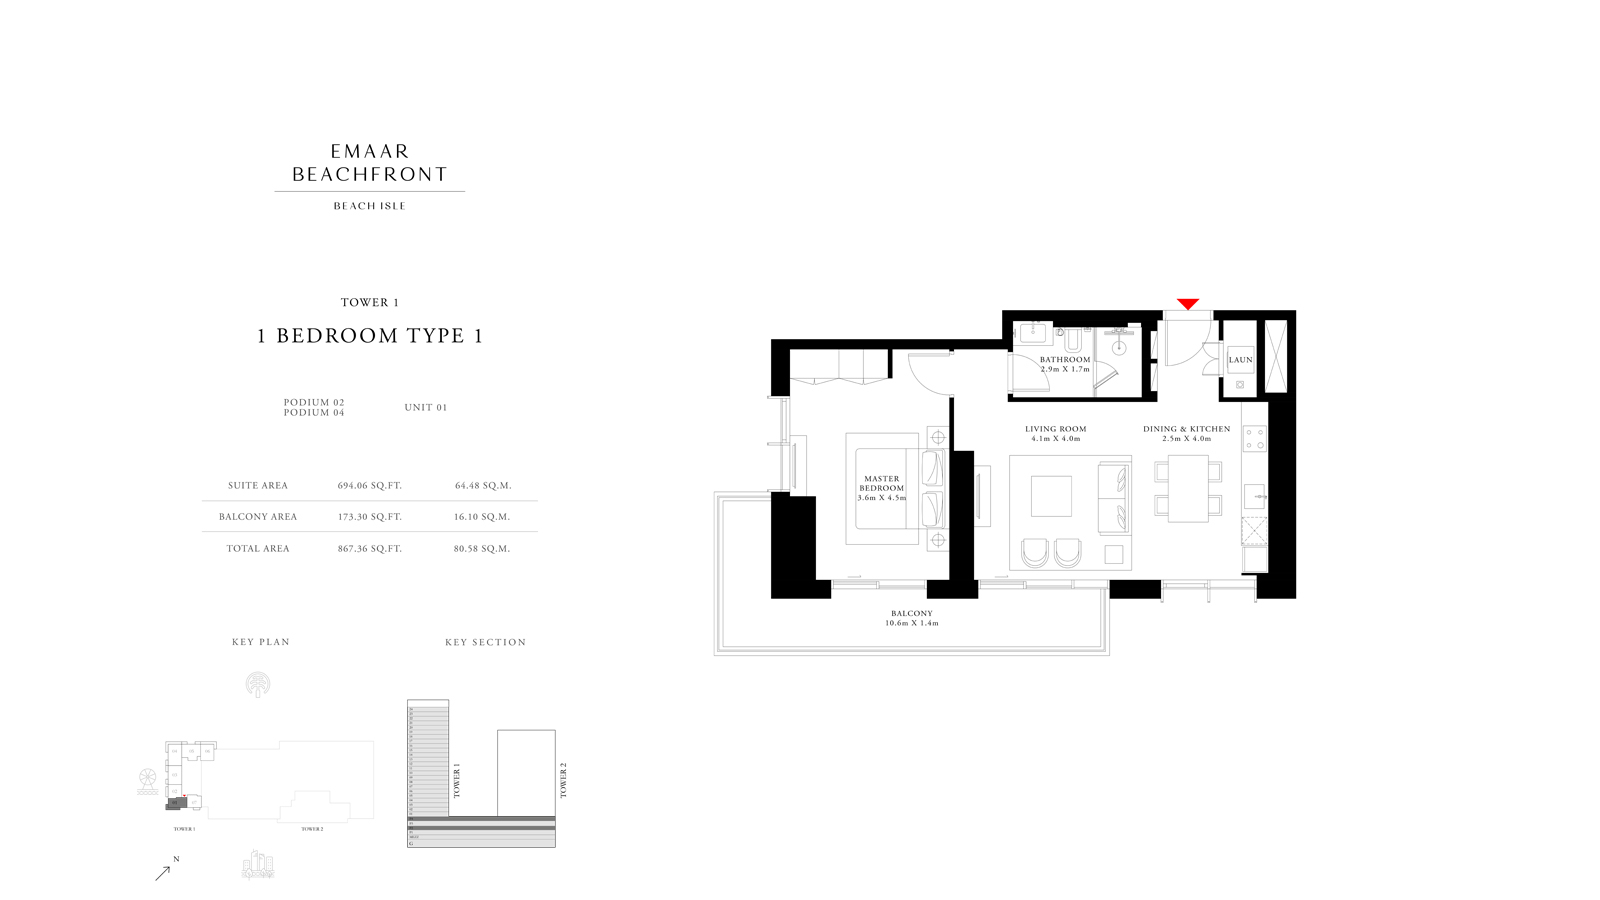 1 Bedroom Type 1 Tower 1, Size 867 sq ft